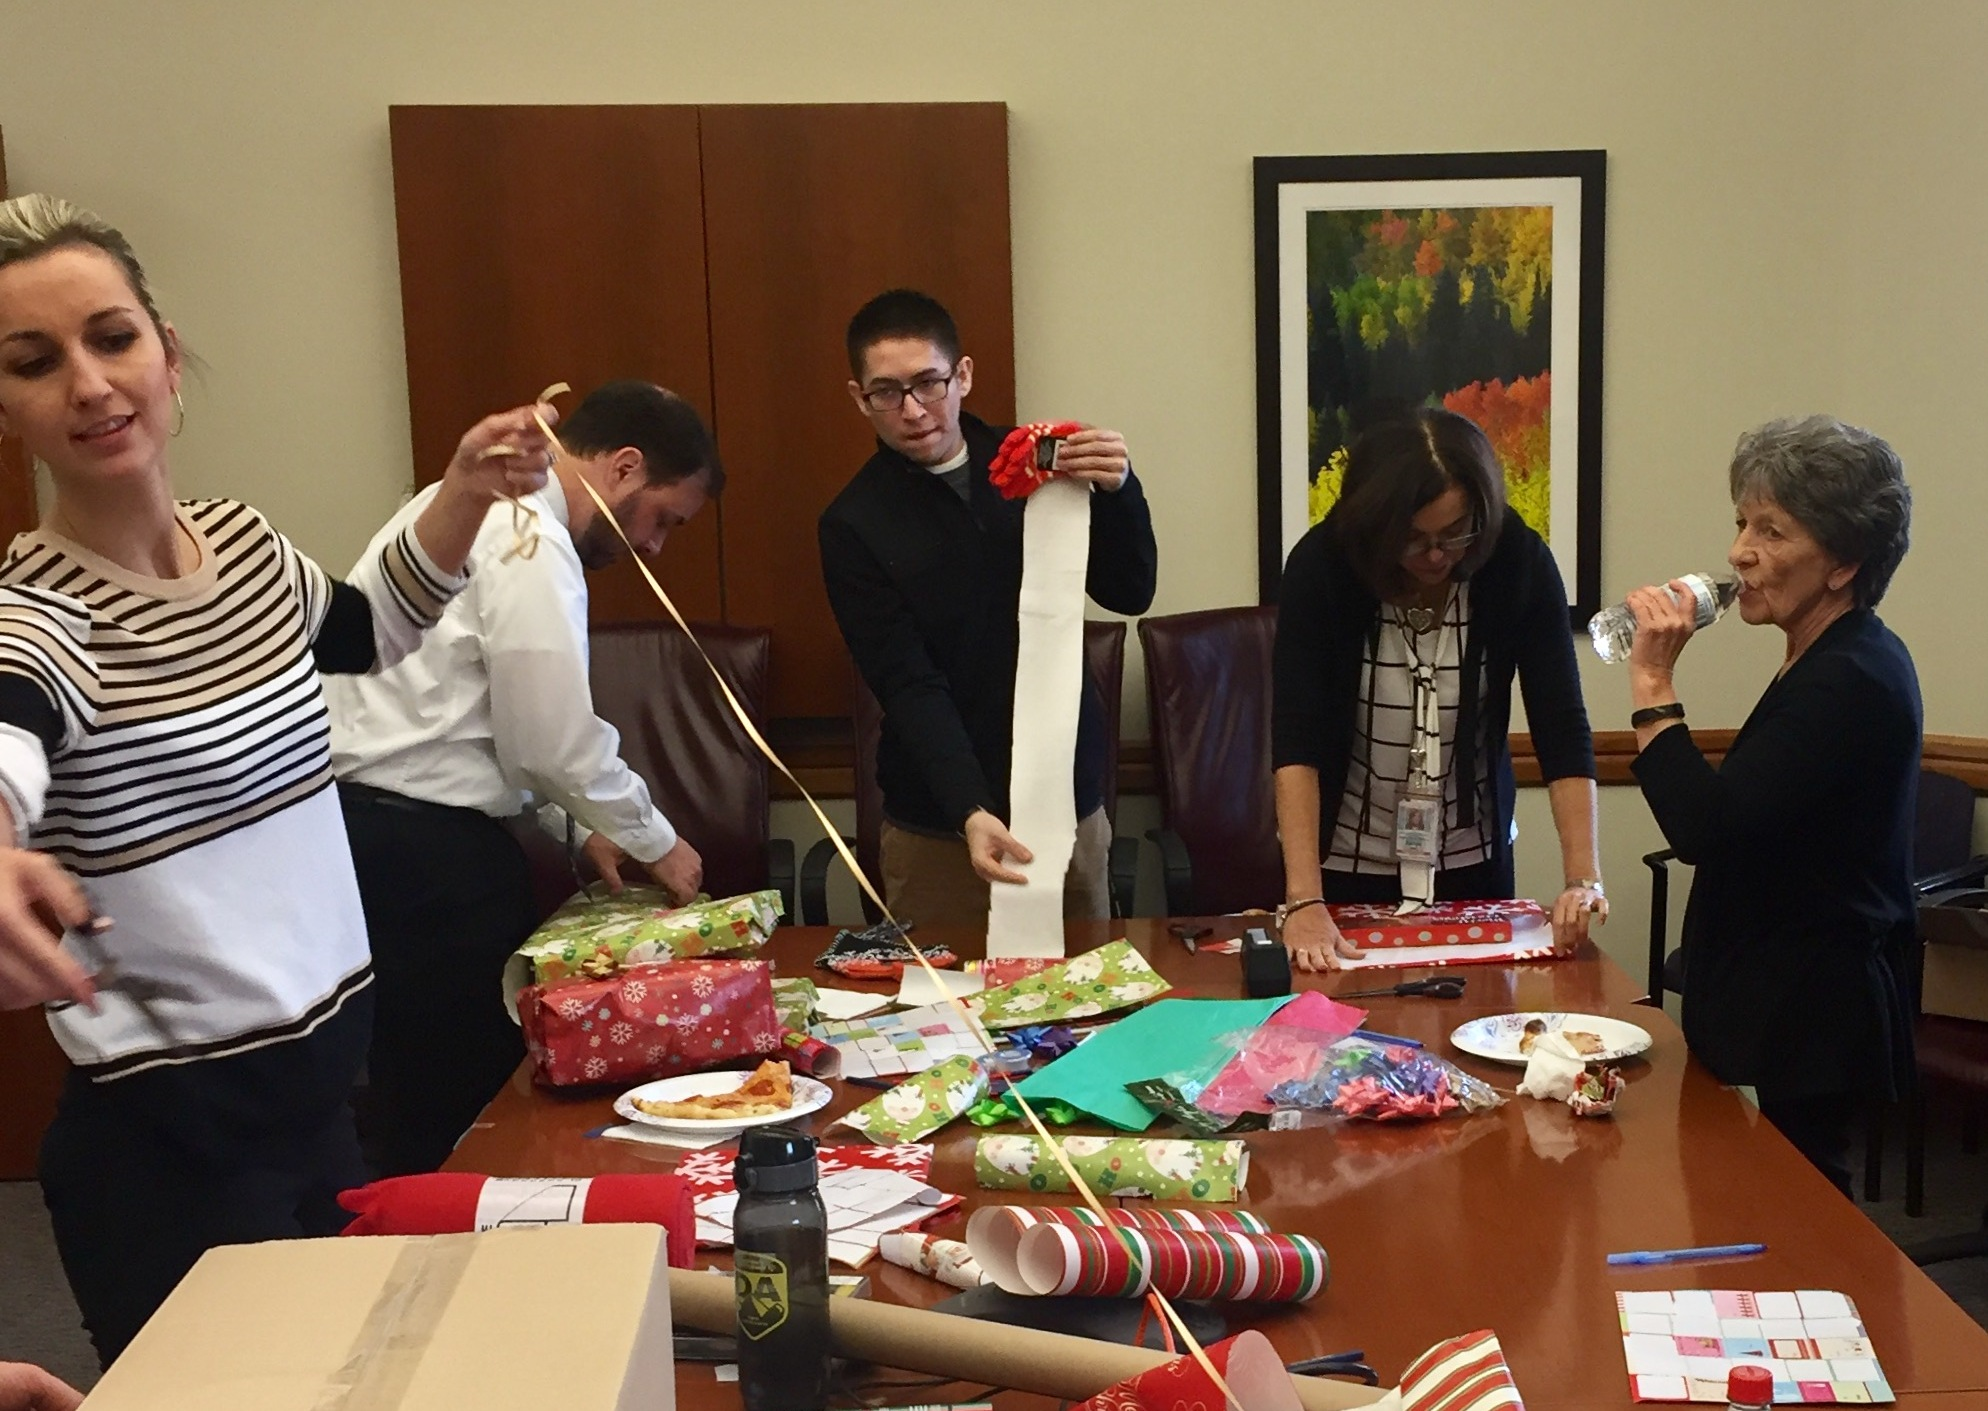 Image 6: Wrapping for Adopt-A-Family